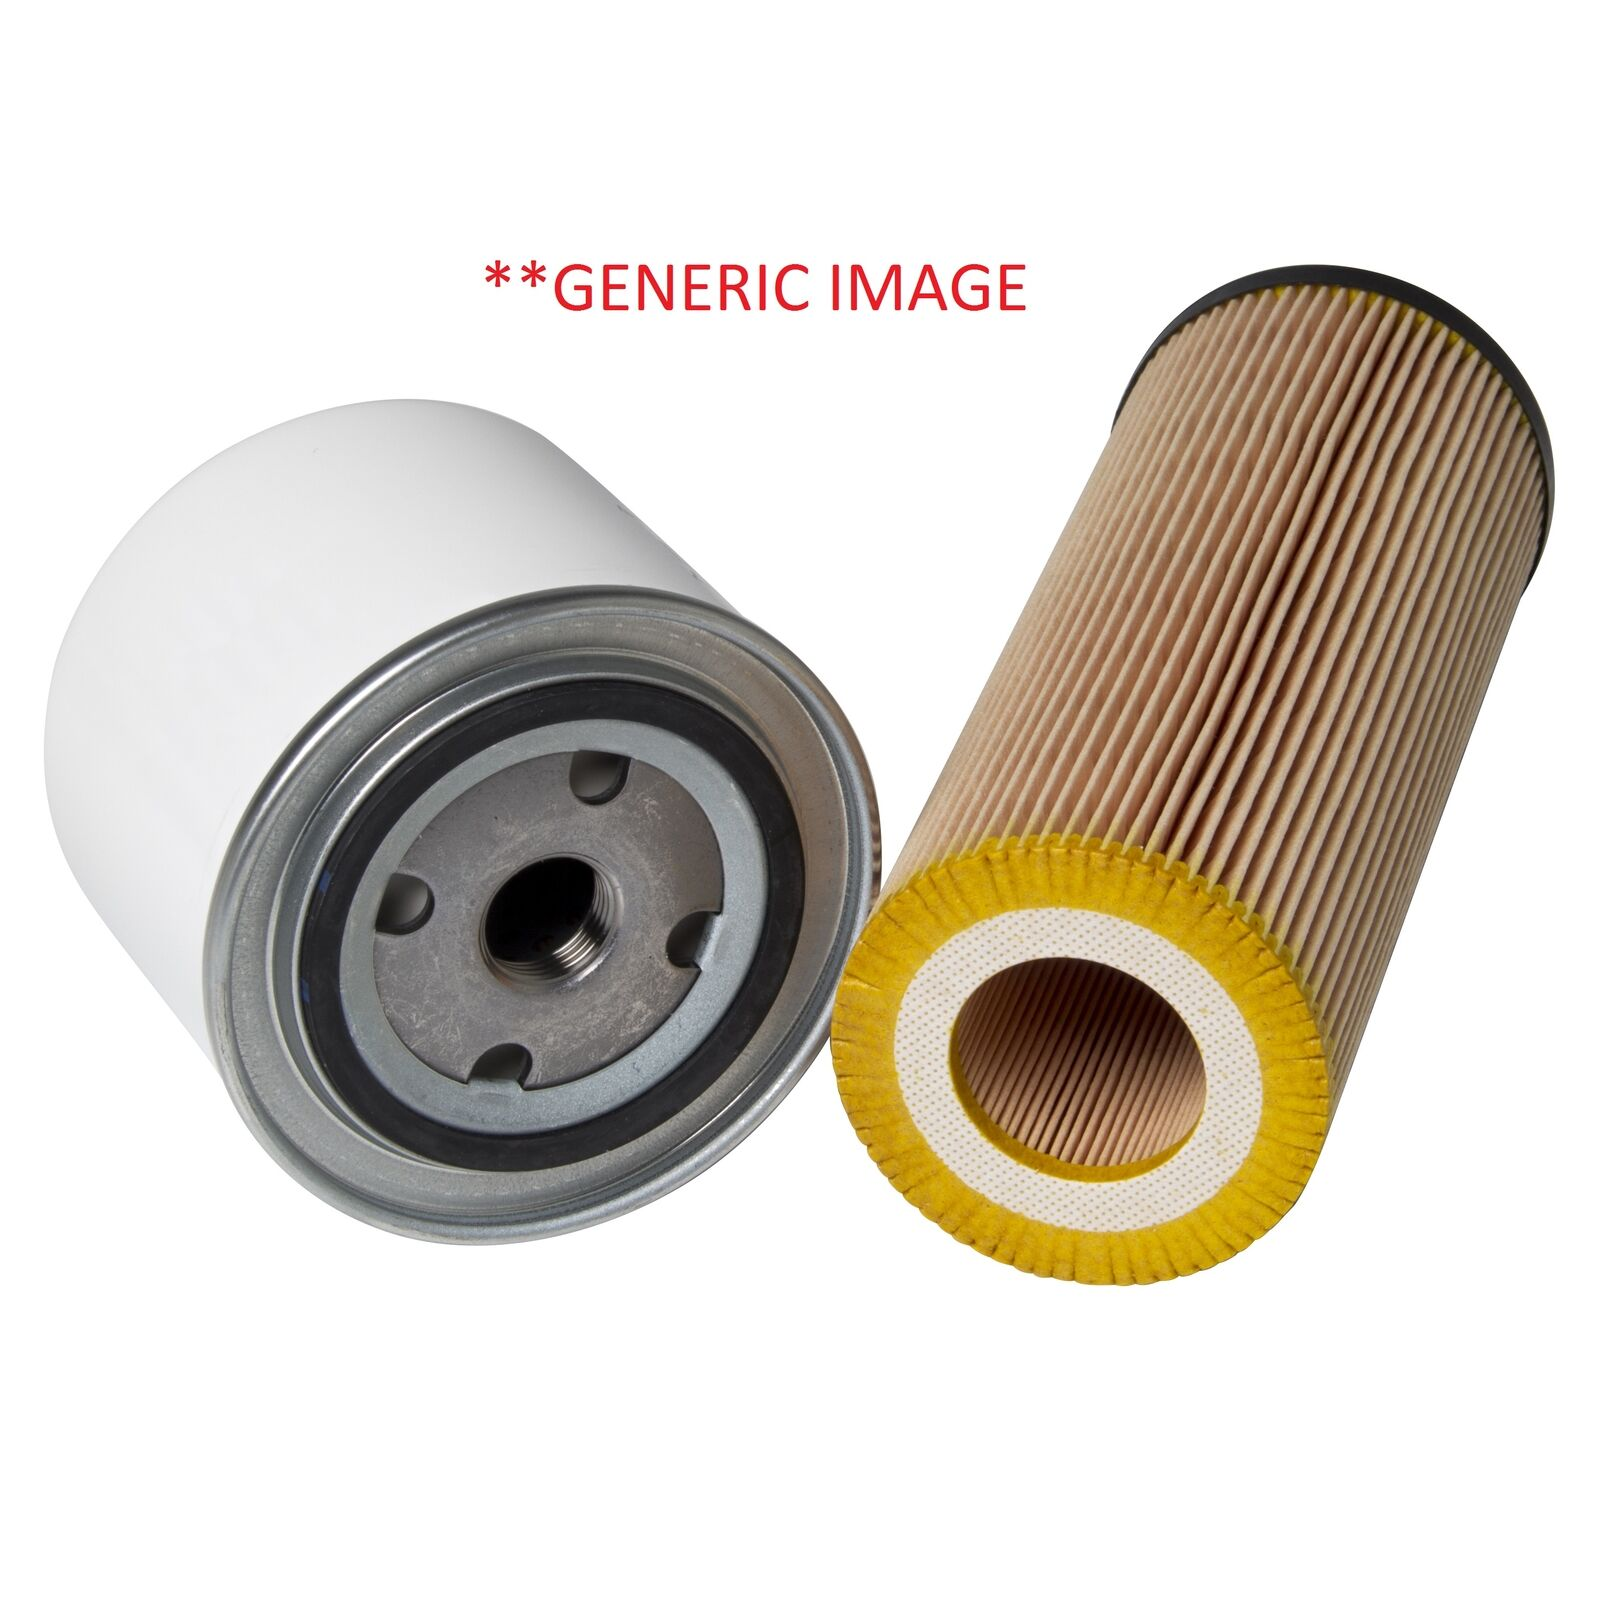 BOSCH F026 407 072 Oil Filter BMW 1 Series 3 Series 5 Series X1 X3